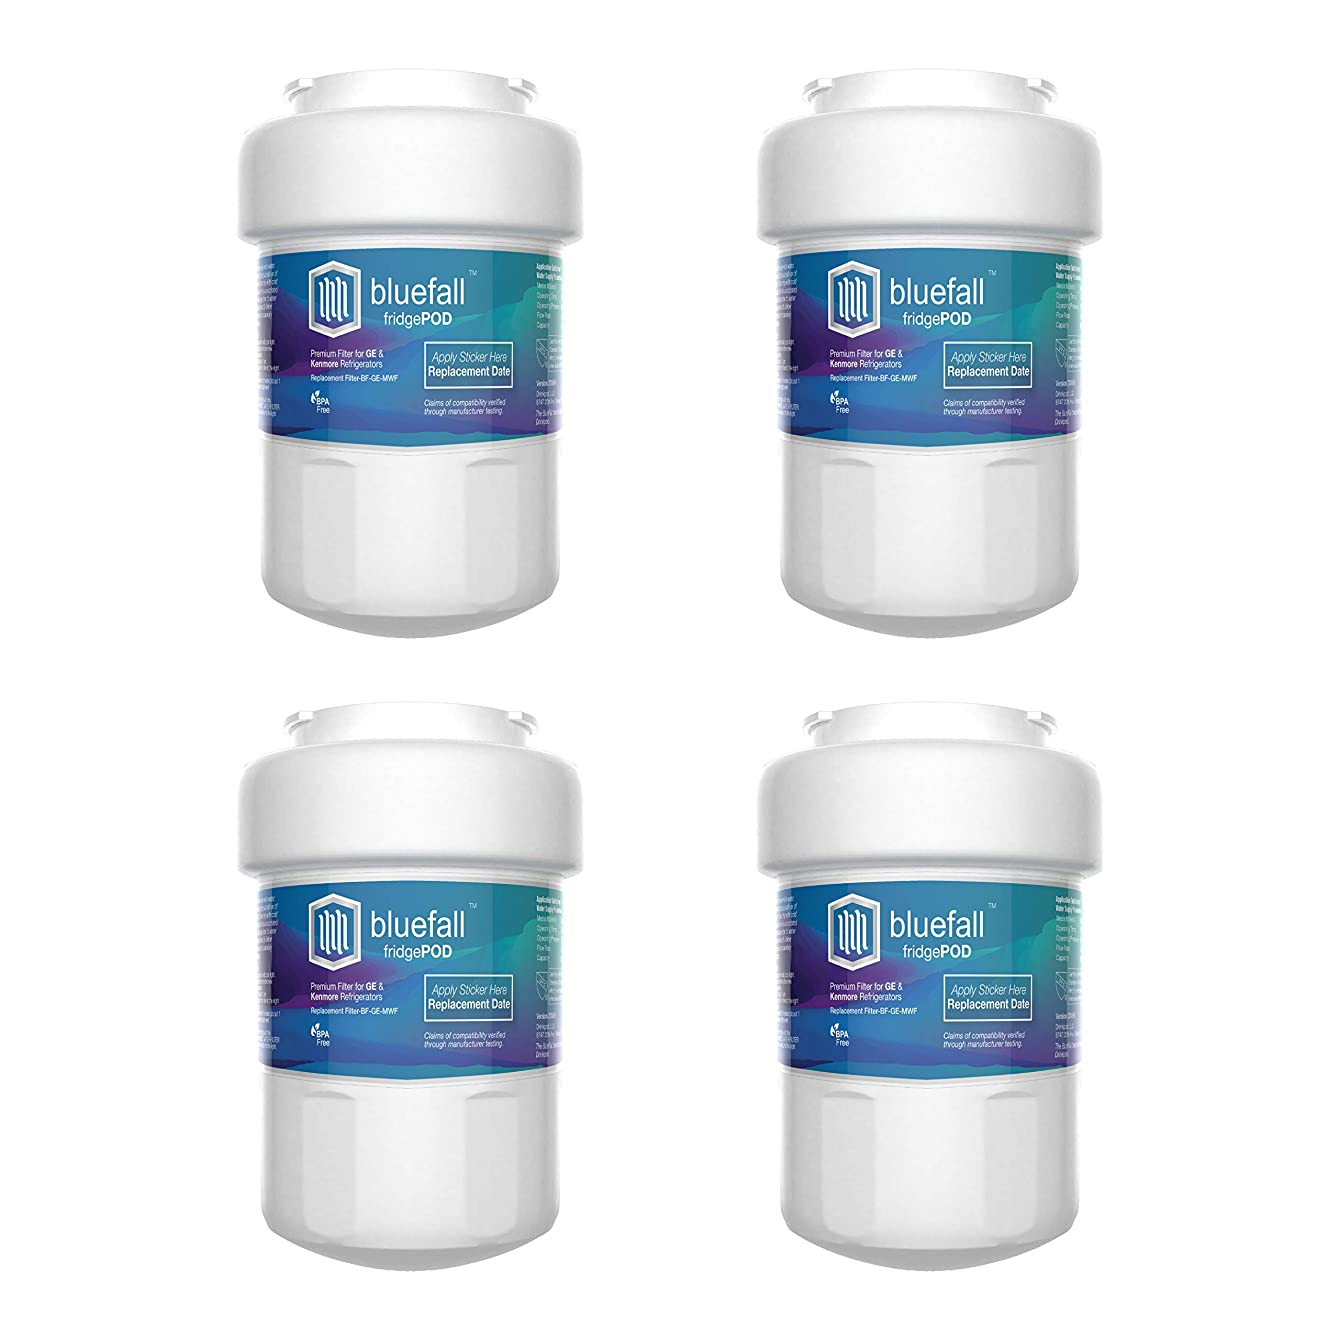 GE Refrigerator Water Filter for GE MWF Replacement Refrigerator Water Filter. Compatible by Bluefall - Value Pack of 4